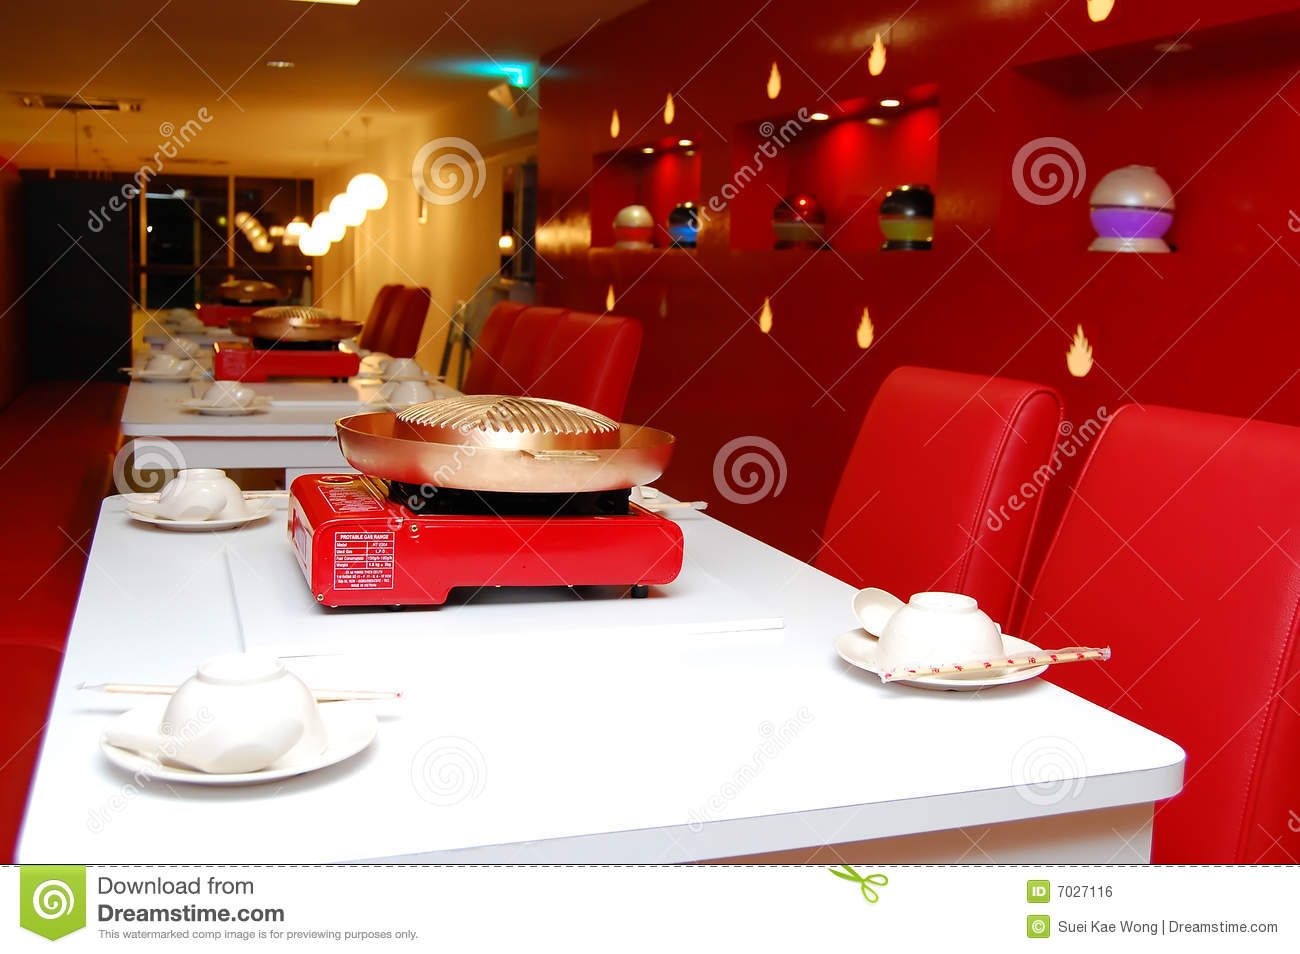 Steamboat restaurant elegant interior design stock photo for Elegant interior design